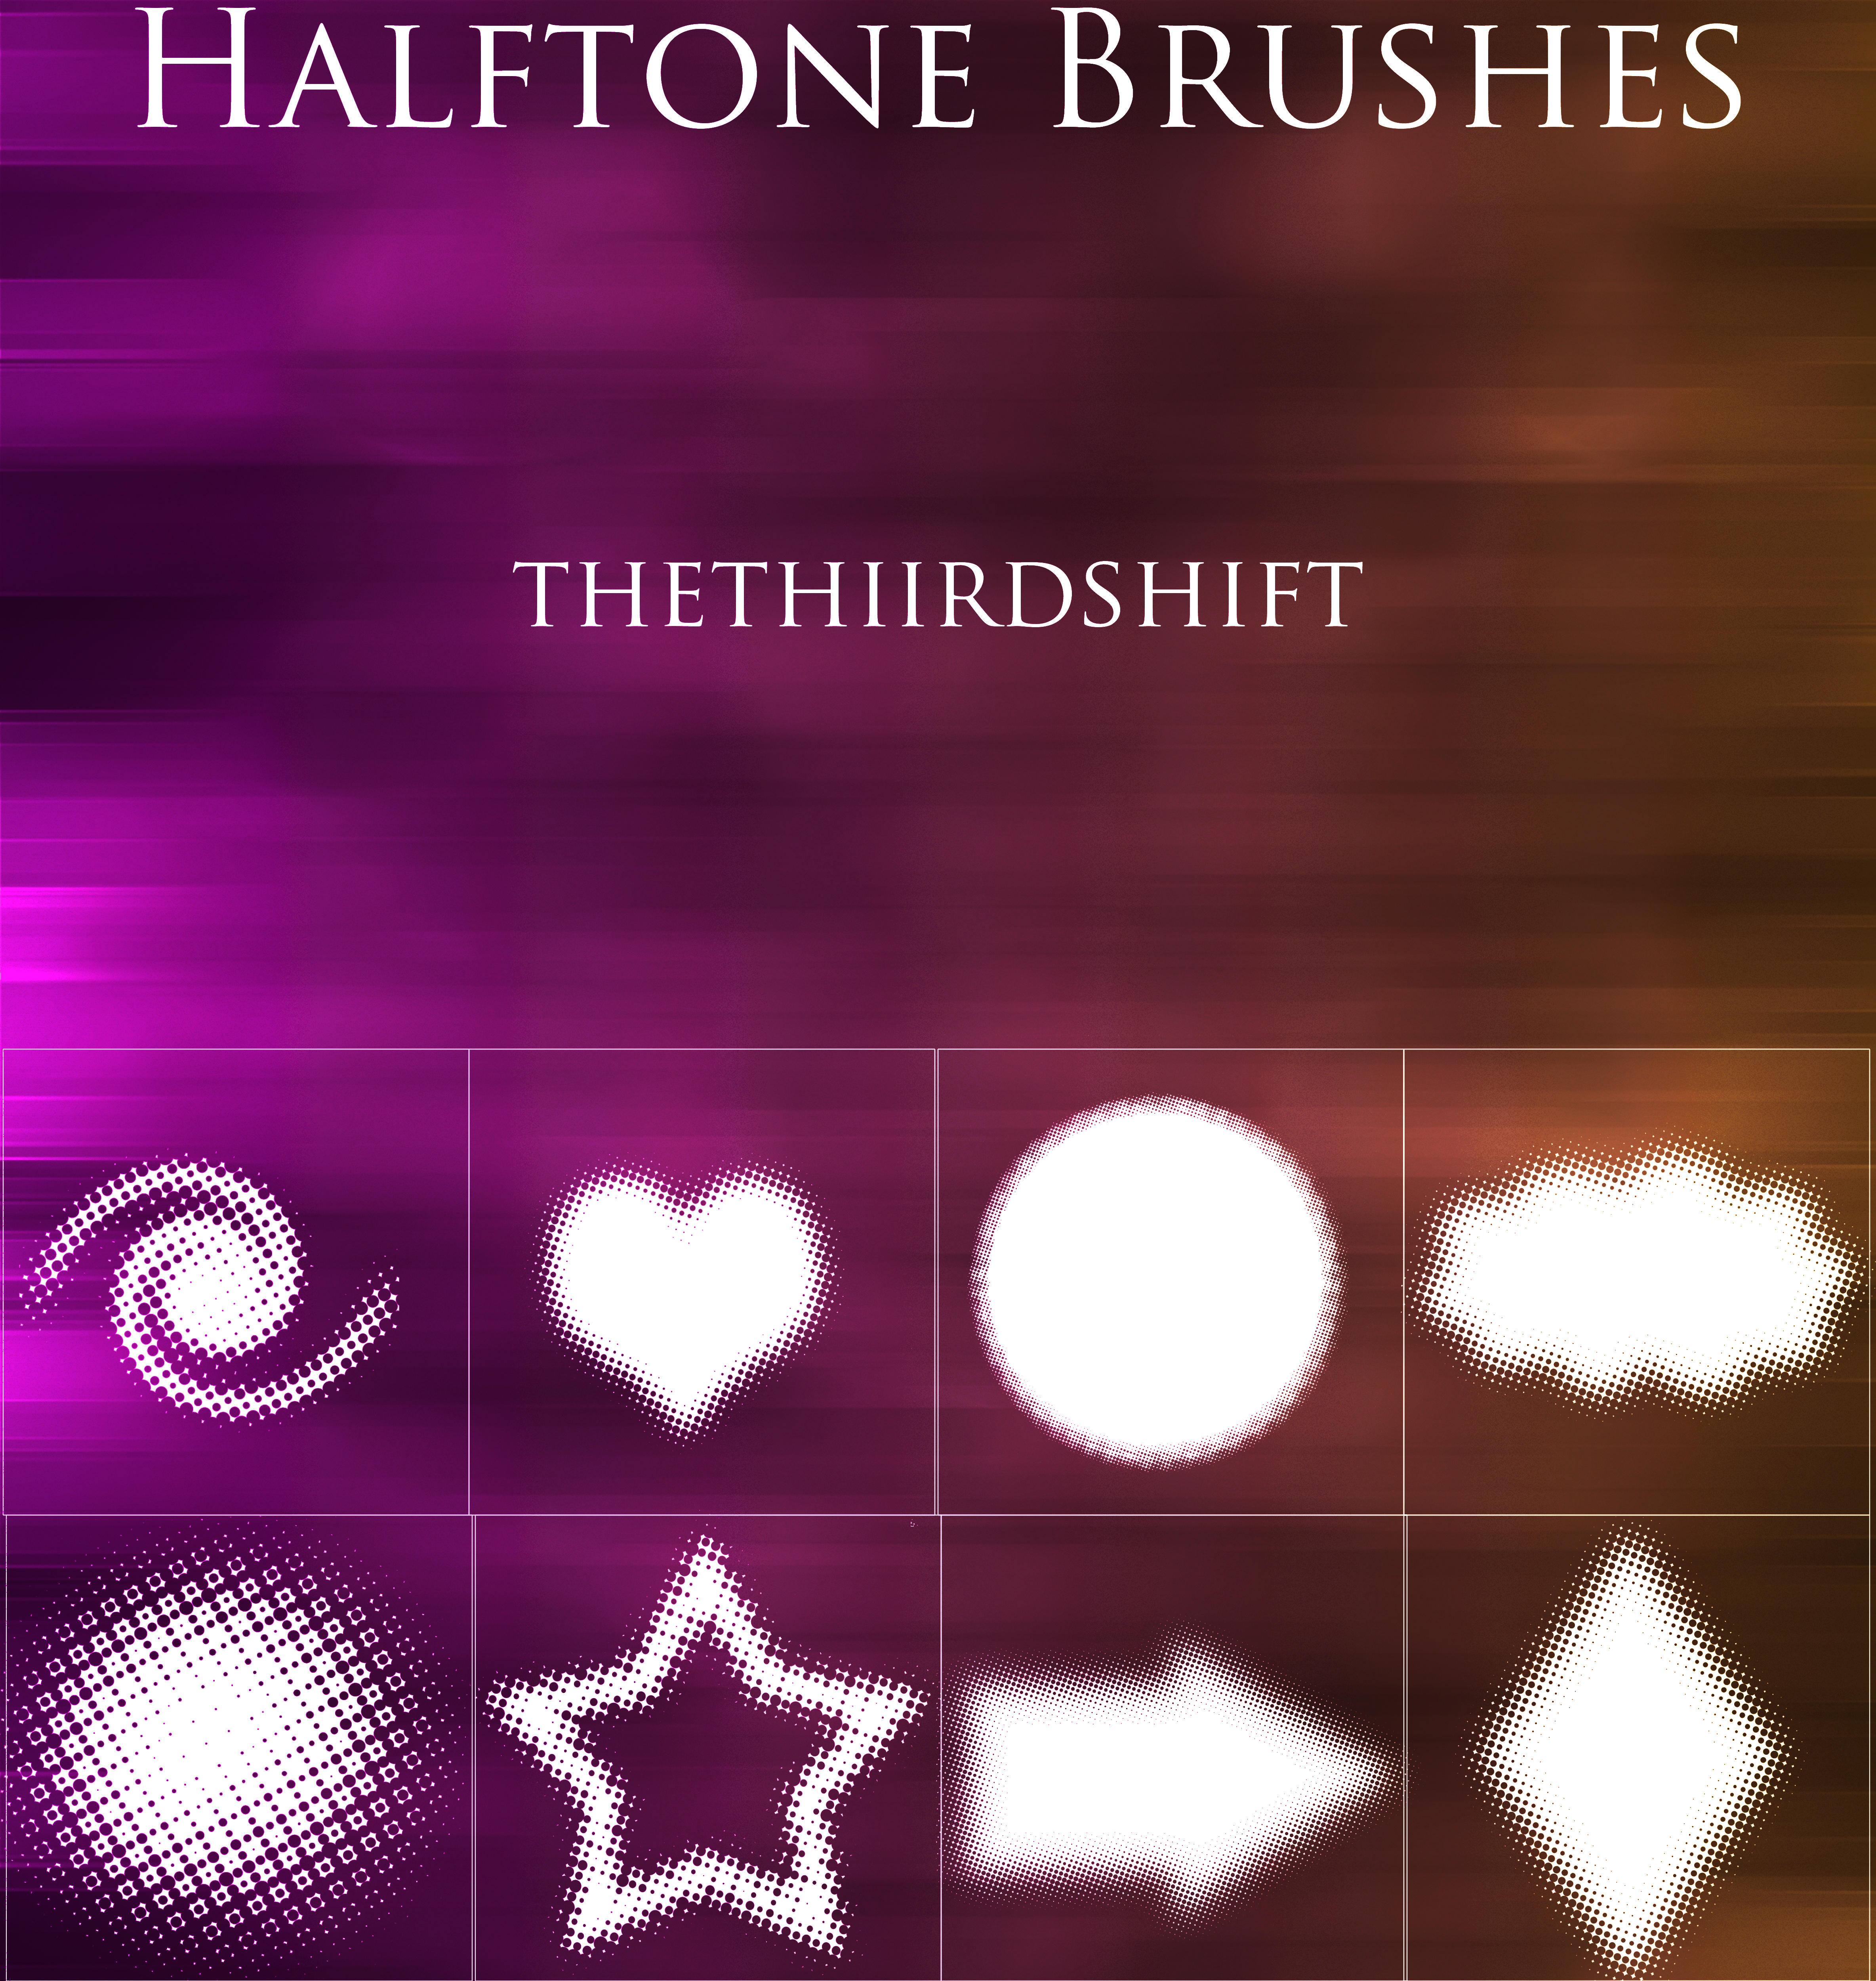 Halftone Brushes by thethiirdshift